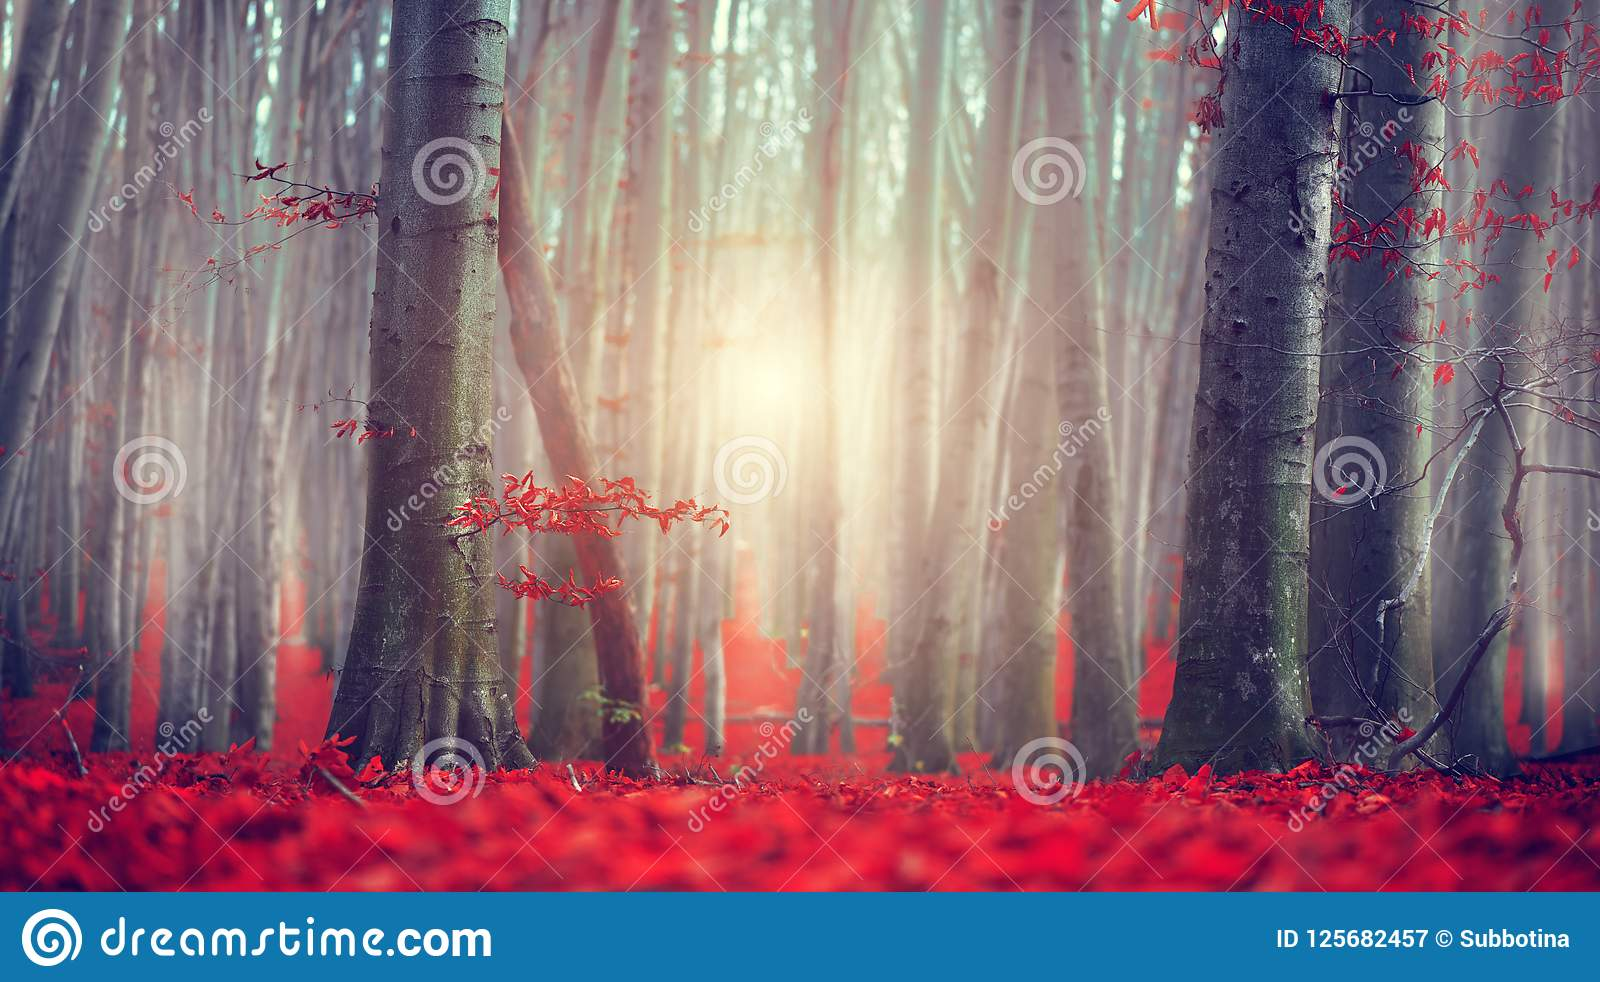 Fall. Autumn landscape. Beautiful autumnal park with bright red leaves and old dark trees. Beauty nature